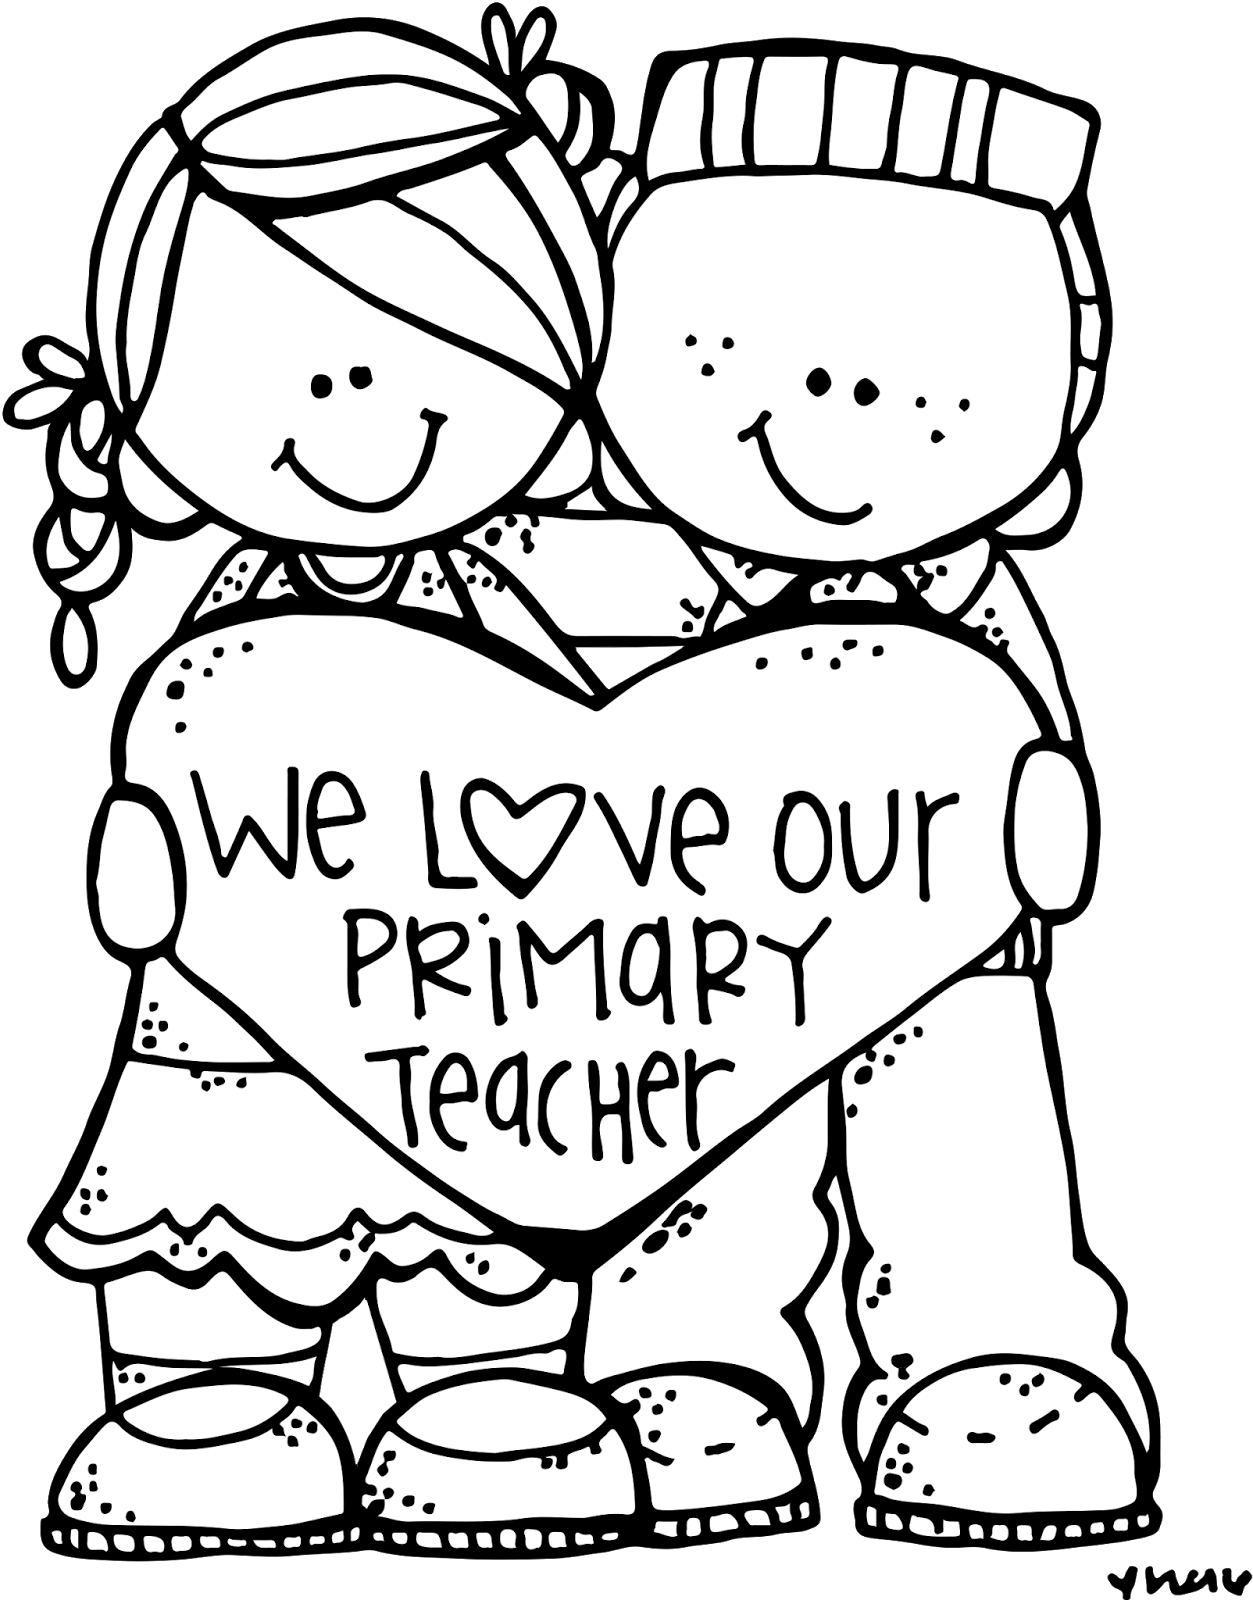 love primary teacher mhldsf 28c 29 melonheadz illustrating llc 2016 rh pinterest nz lds primary clipart 2016 lds primary clipart free